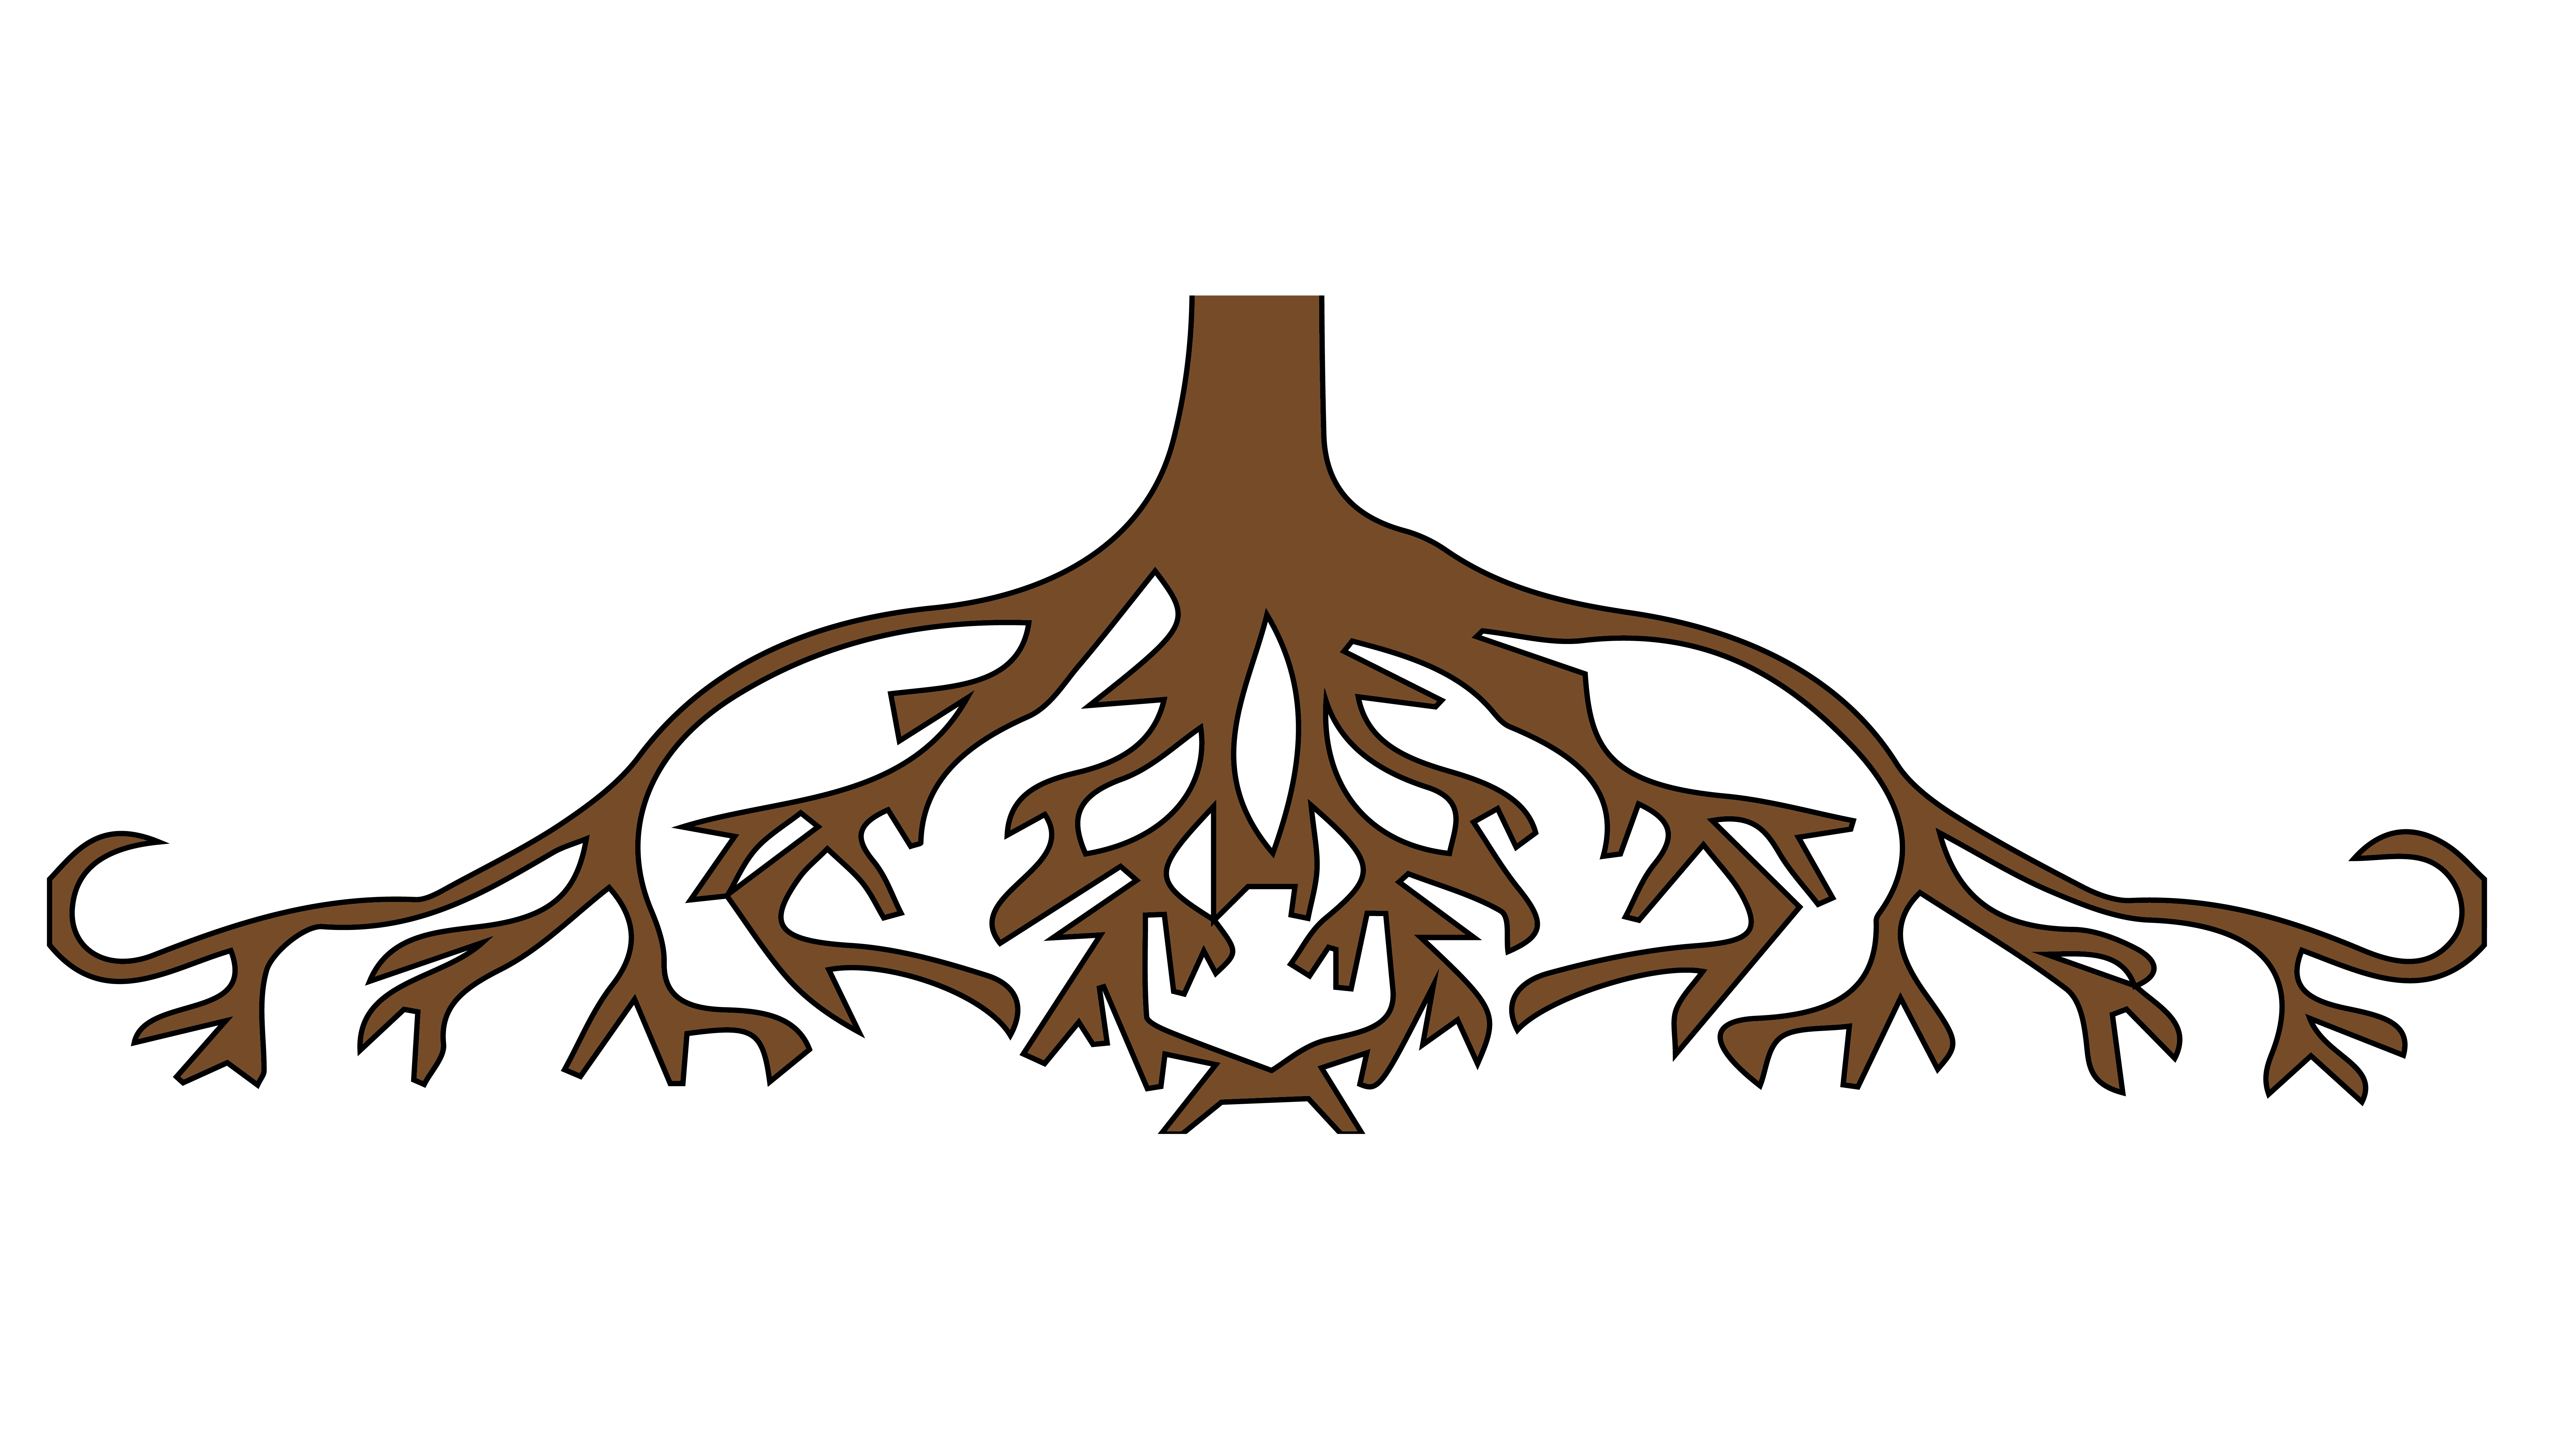 Roots clipart root crop, Roots root crop Transparent FREE ...